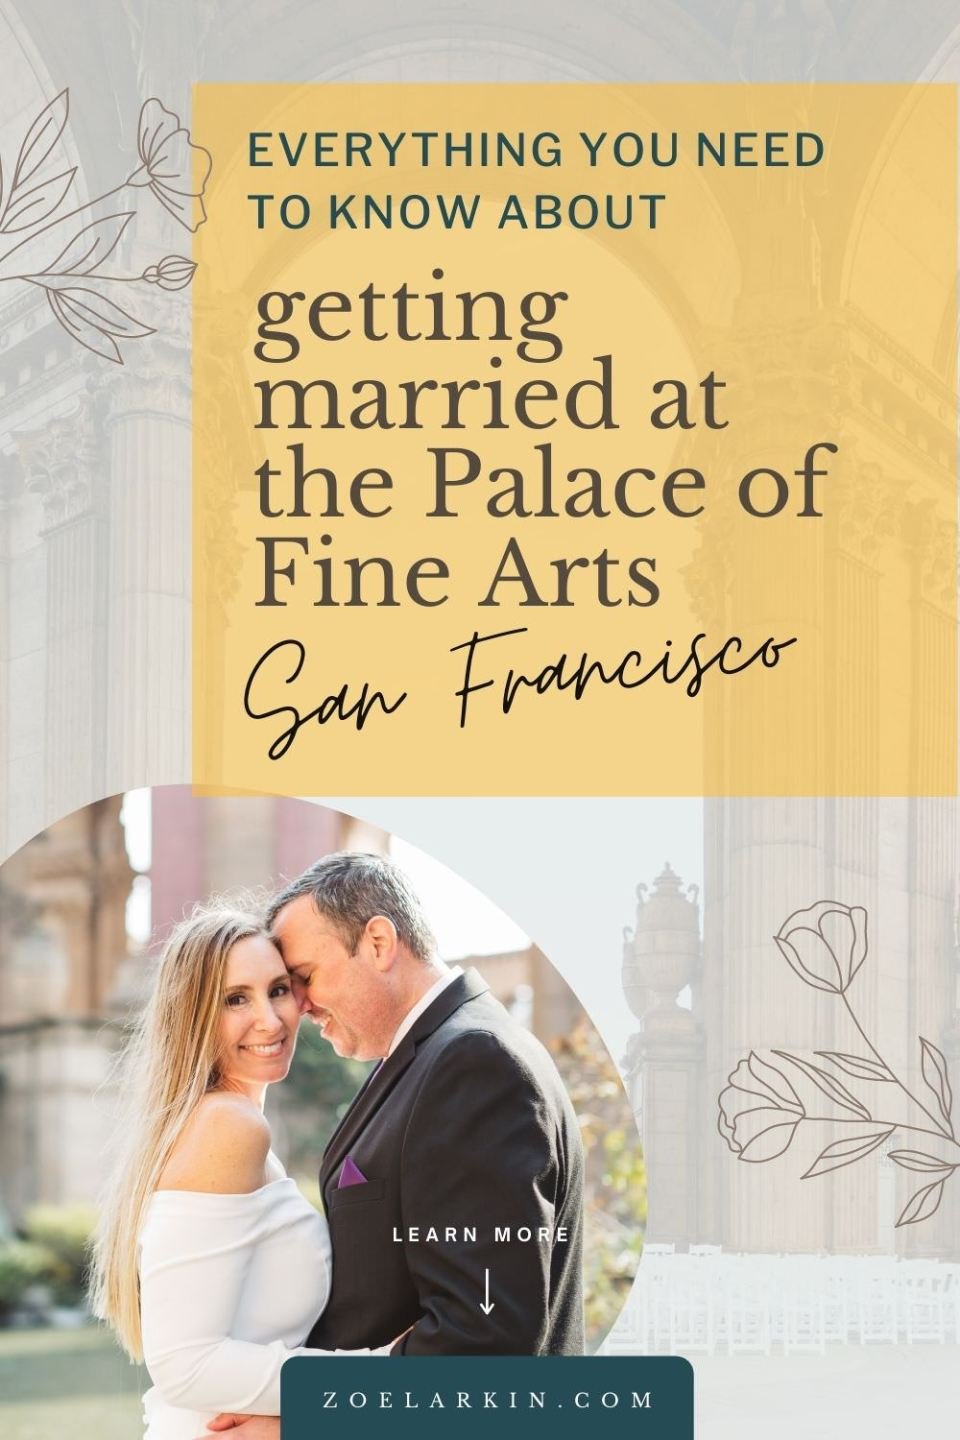 If you're considering getting married at the Palace of Fine Arts in San Francisco, this detailed guide on booking your wedding at the Palace of Fine arts is for you! Whatever kind of wedding you have planned, the Palace of Fine Arts might just be the perfect elegant, historical Bay Area wedding venue for you. Intimate wedding or something a little grander, this guide has everything you need to book your wedding at the Palace of Fine Arts, San Francisco | #sanfranciscowedding zoelarkin.com